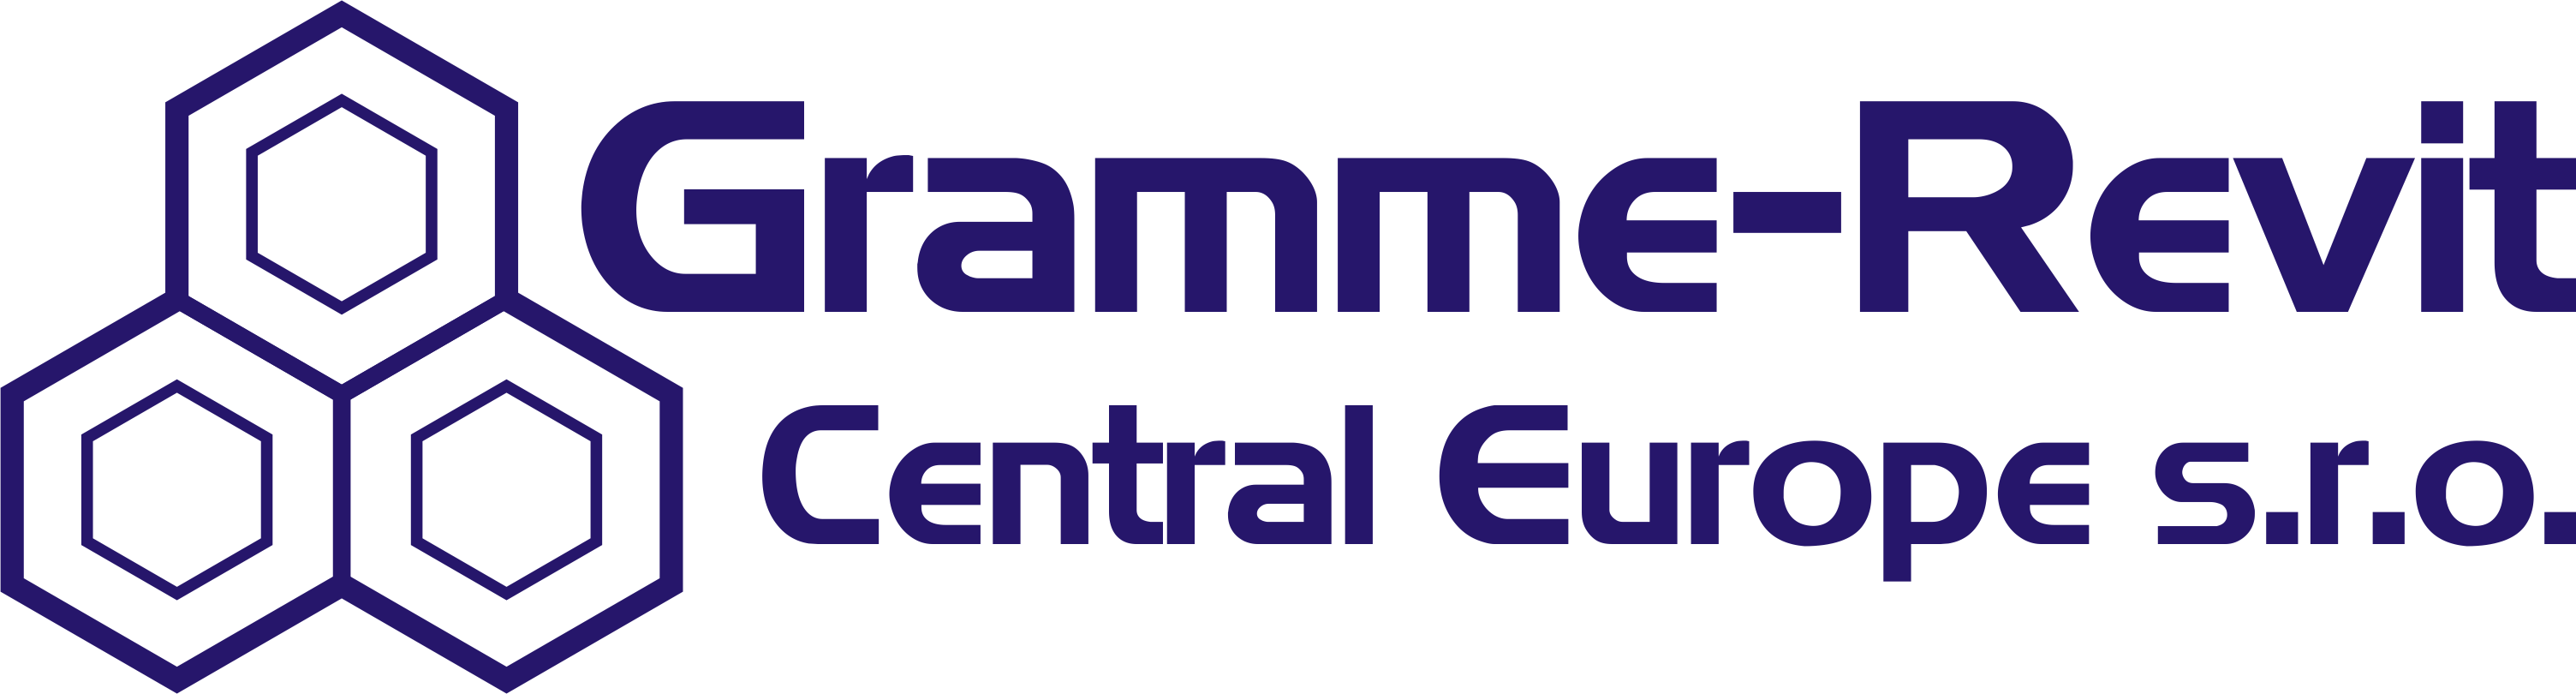 Gramme-Revit Central Europe s.r.o.